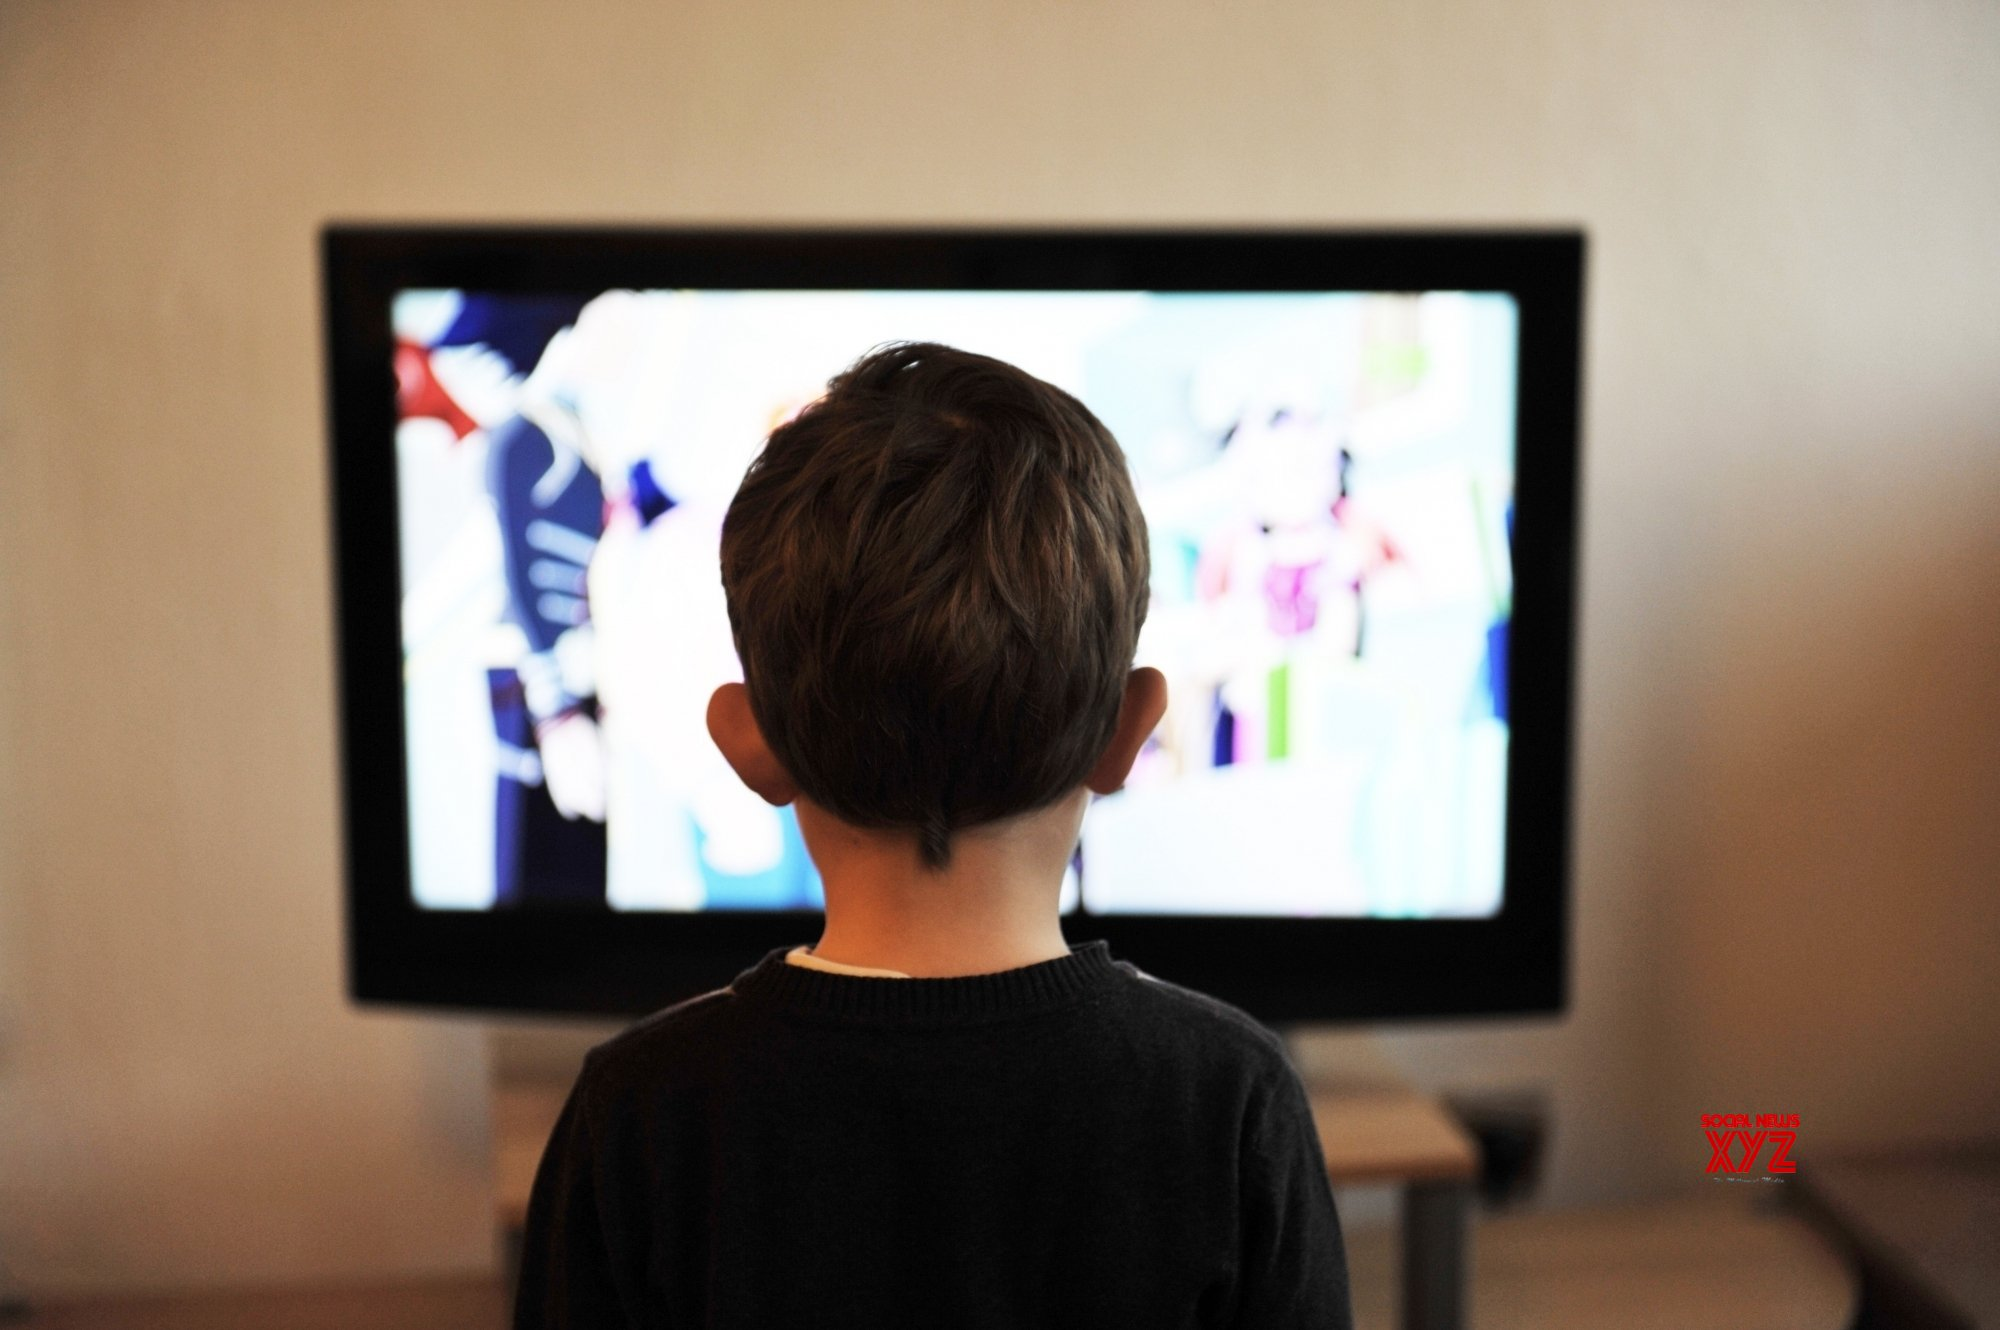 Over 2 hours screen time daily will make your kids impulsive